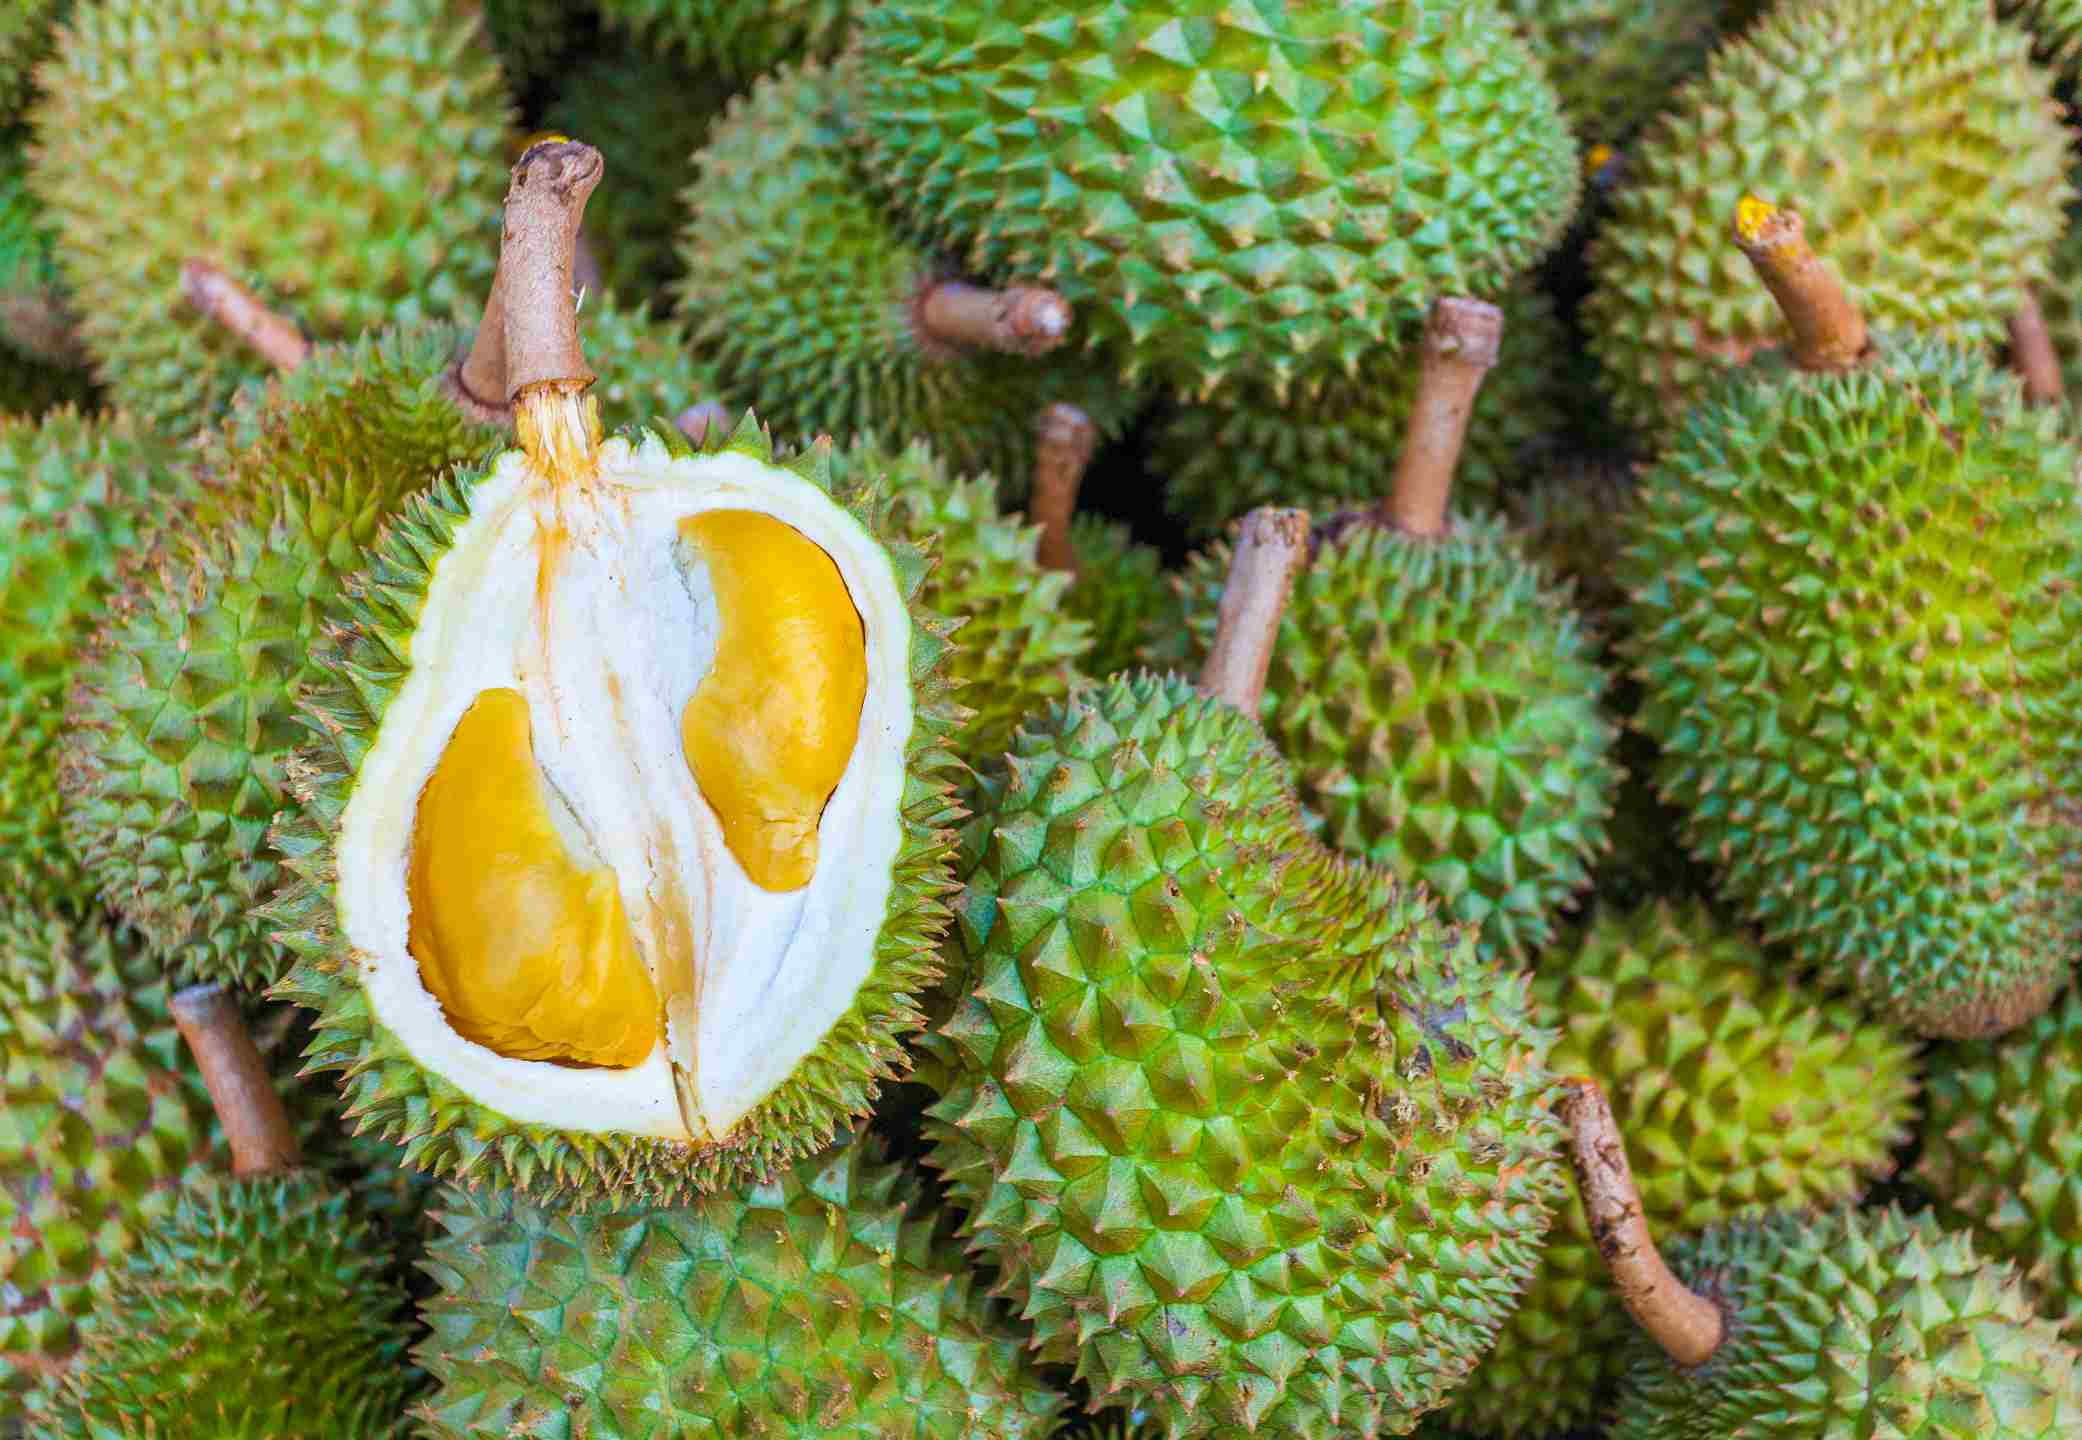 Several Durian, called the king of fruits, with one open.